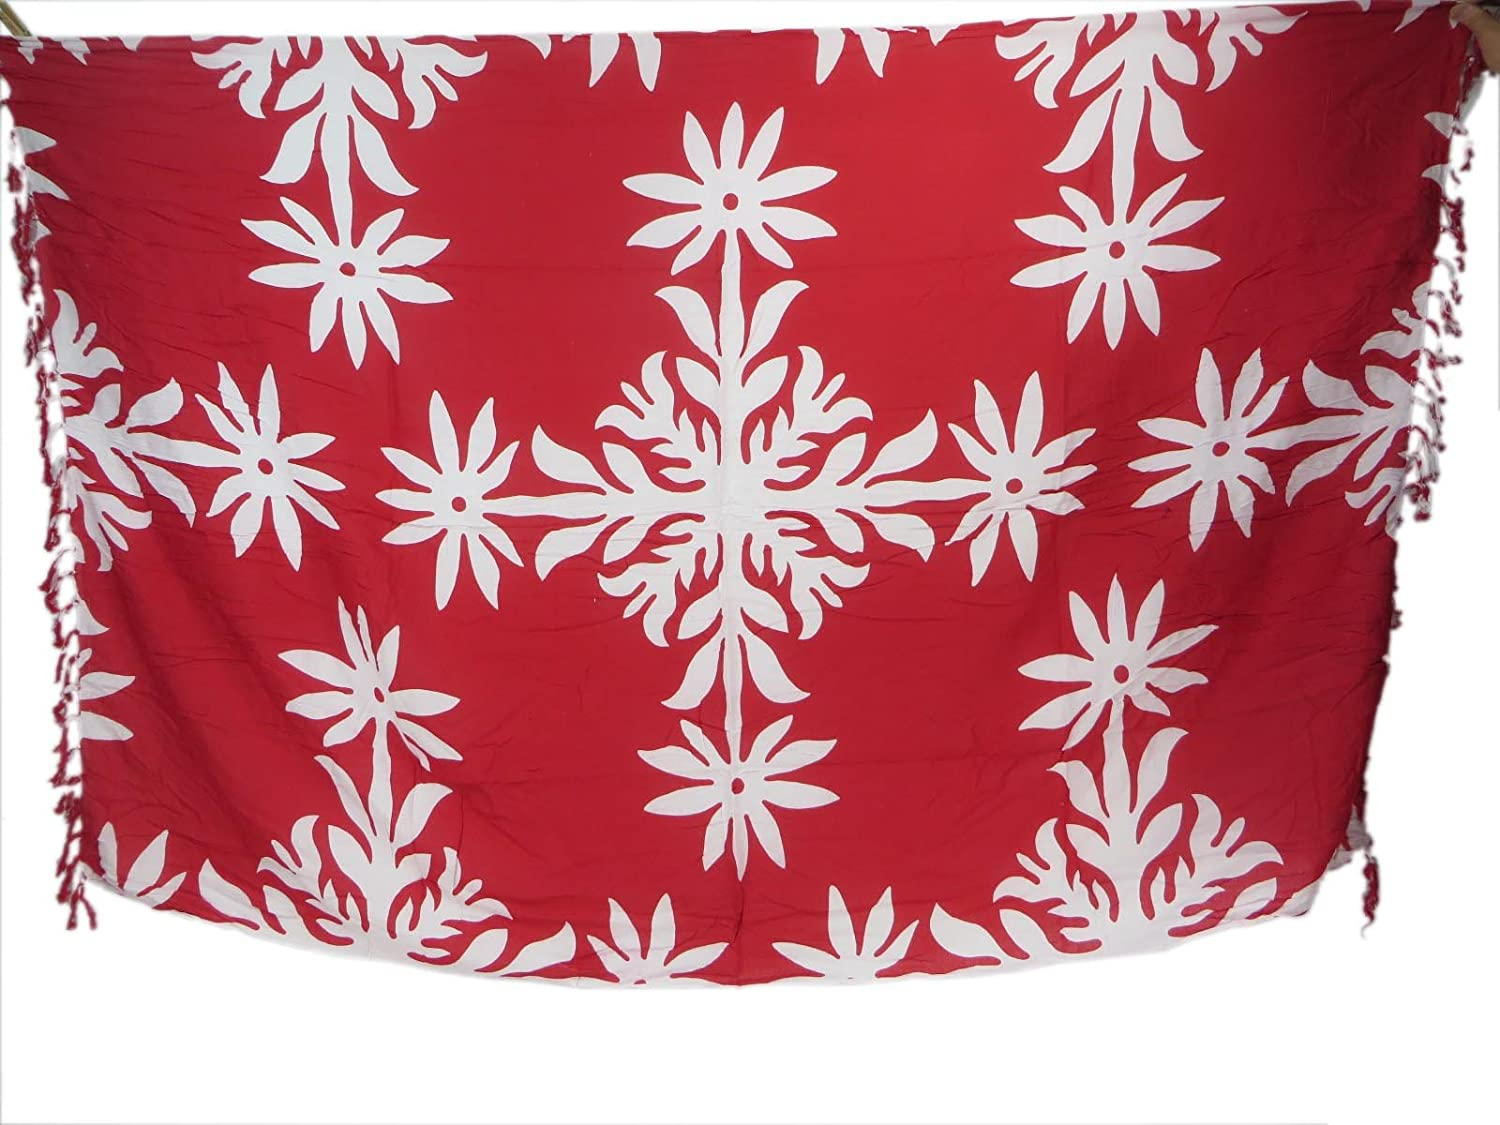 Bali handmade red sarong with white snowflakes